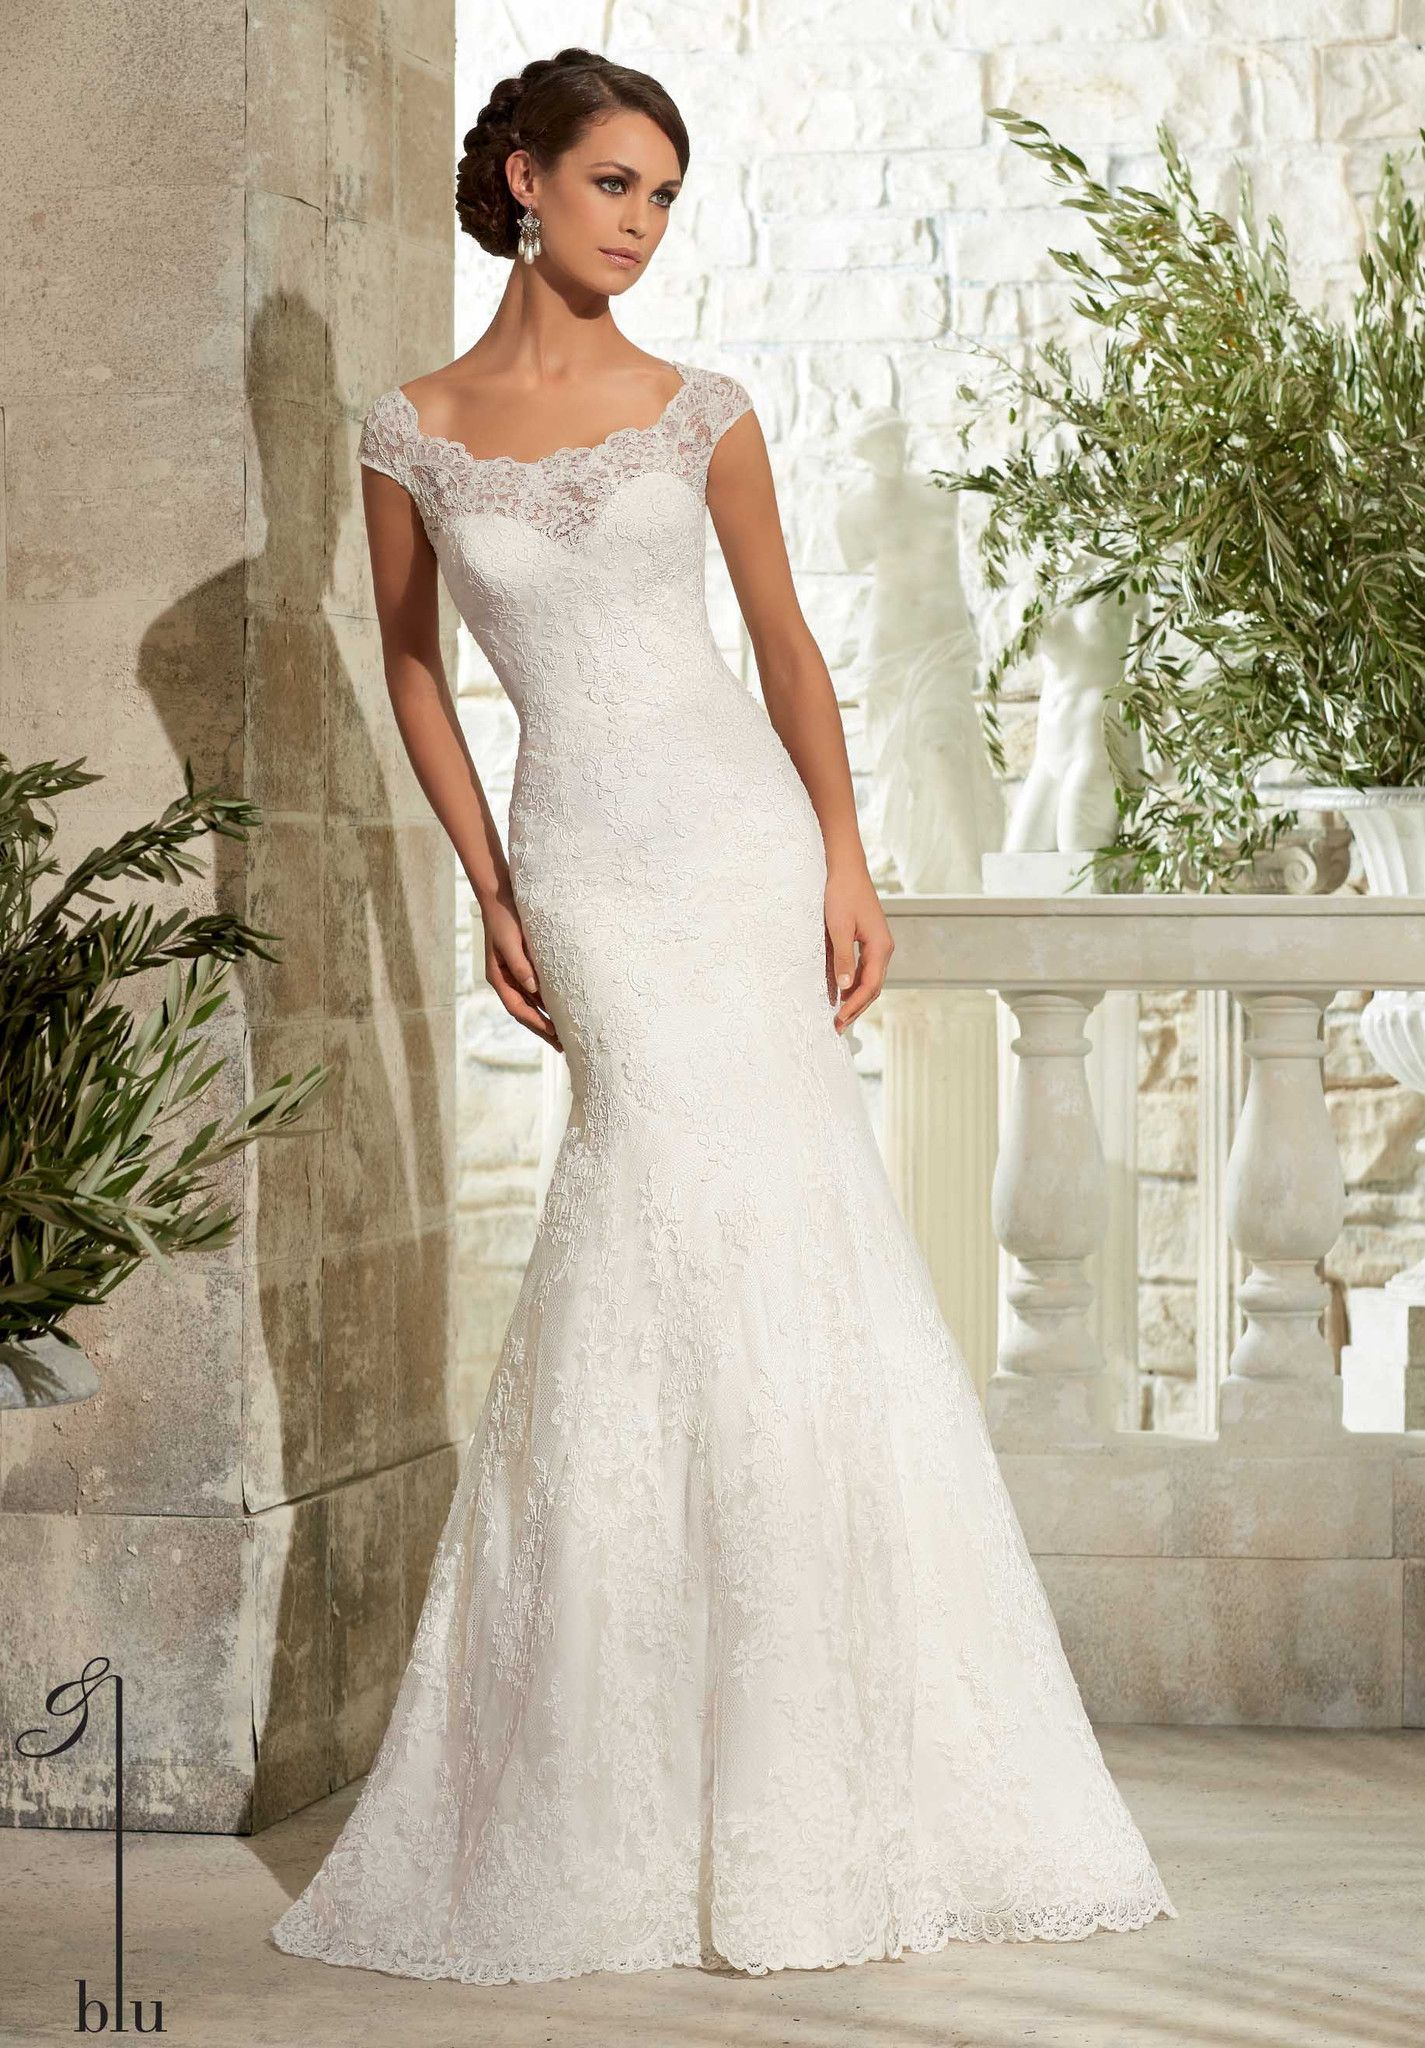 Blu by Mori Lee 5310 Lace Fit and Flare Wedding Dress